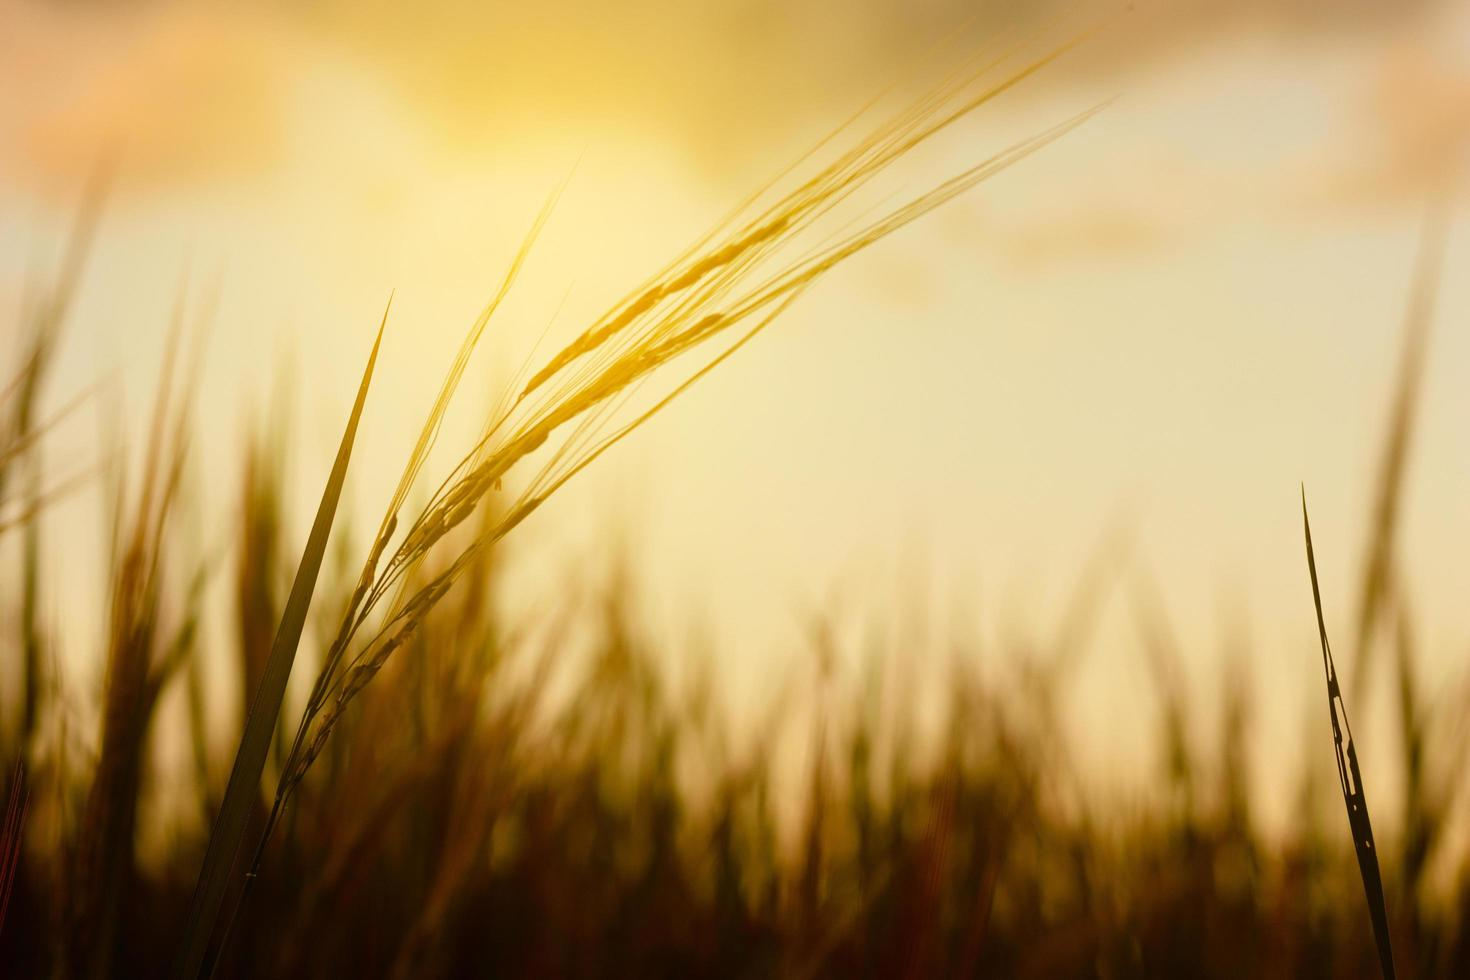 Wheat plant in the sunset photo